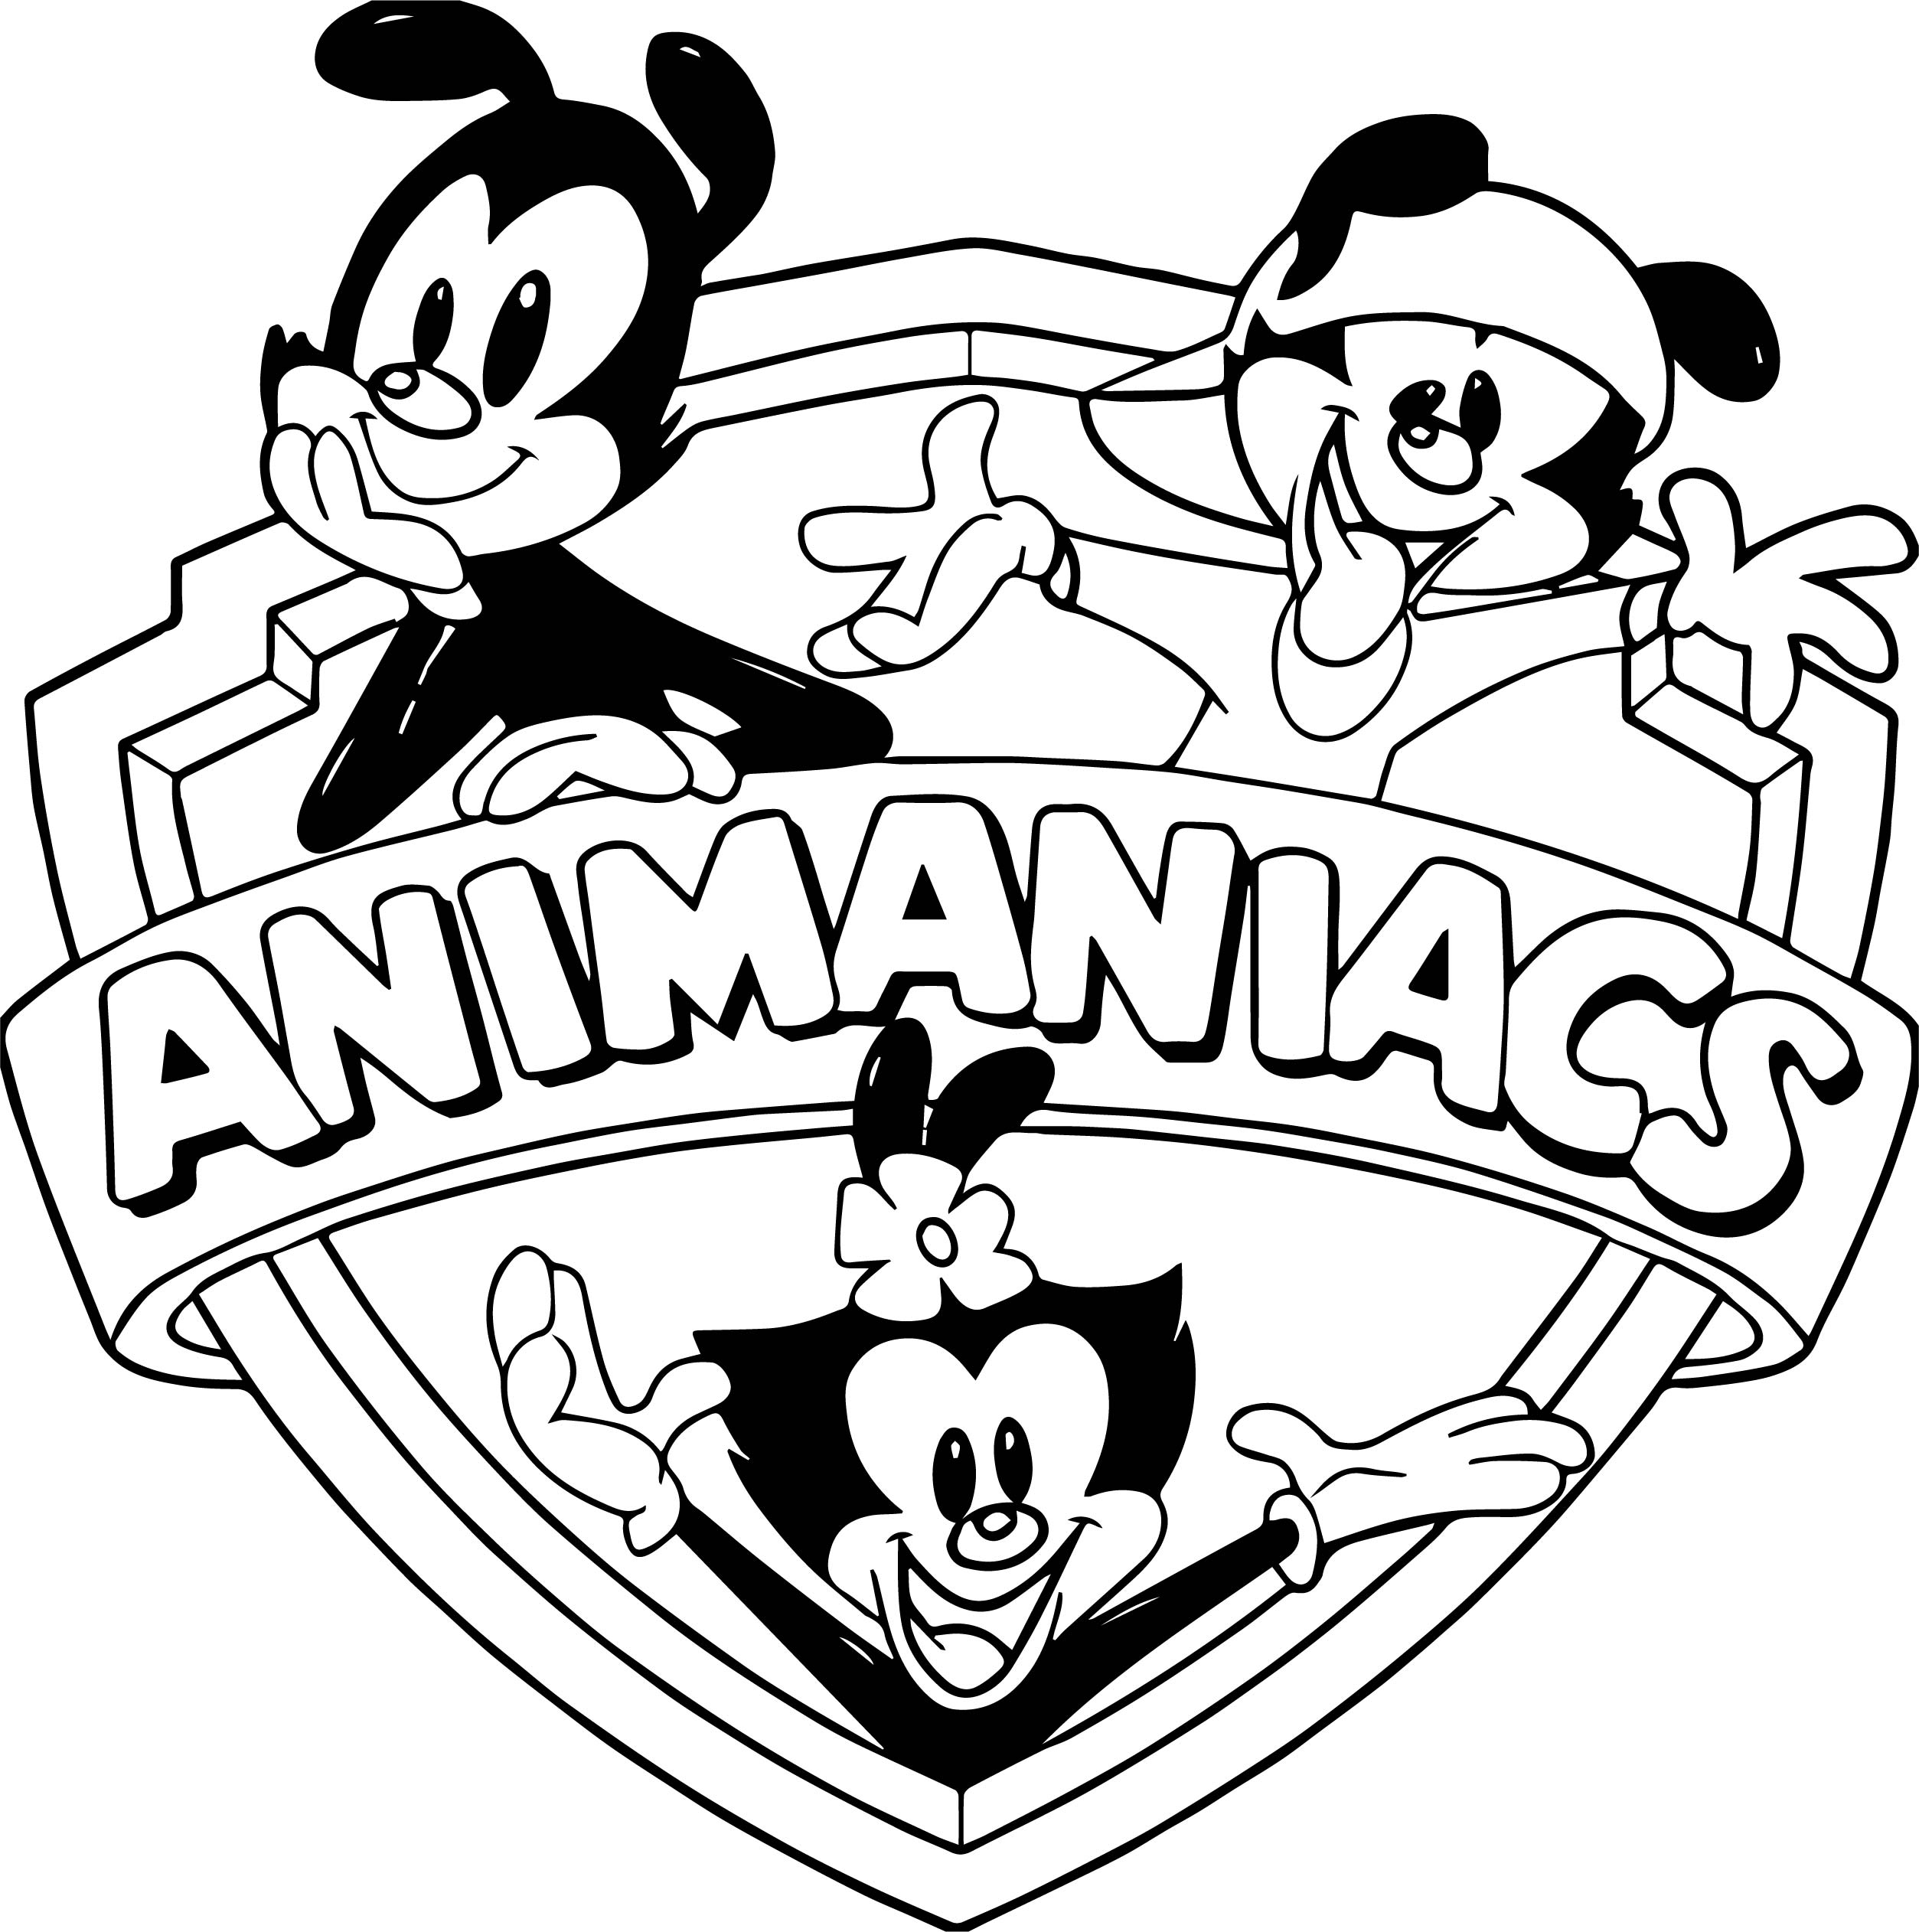 Animaniacs logo coloring page for Animaniacs coloring pages